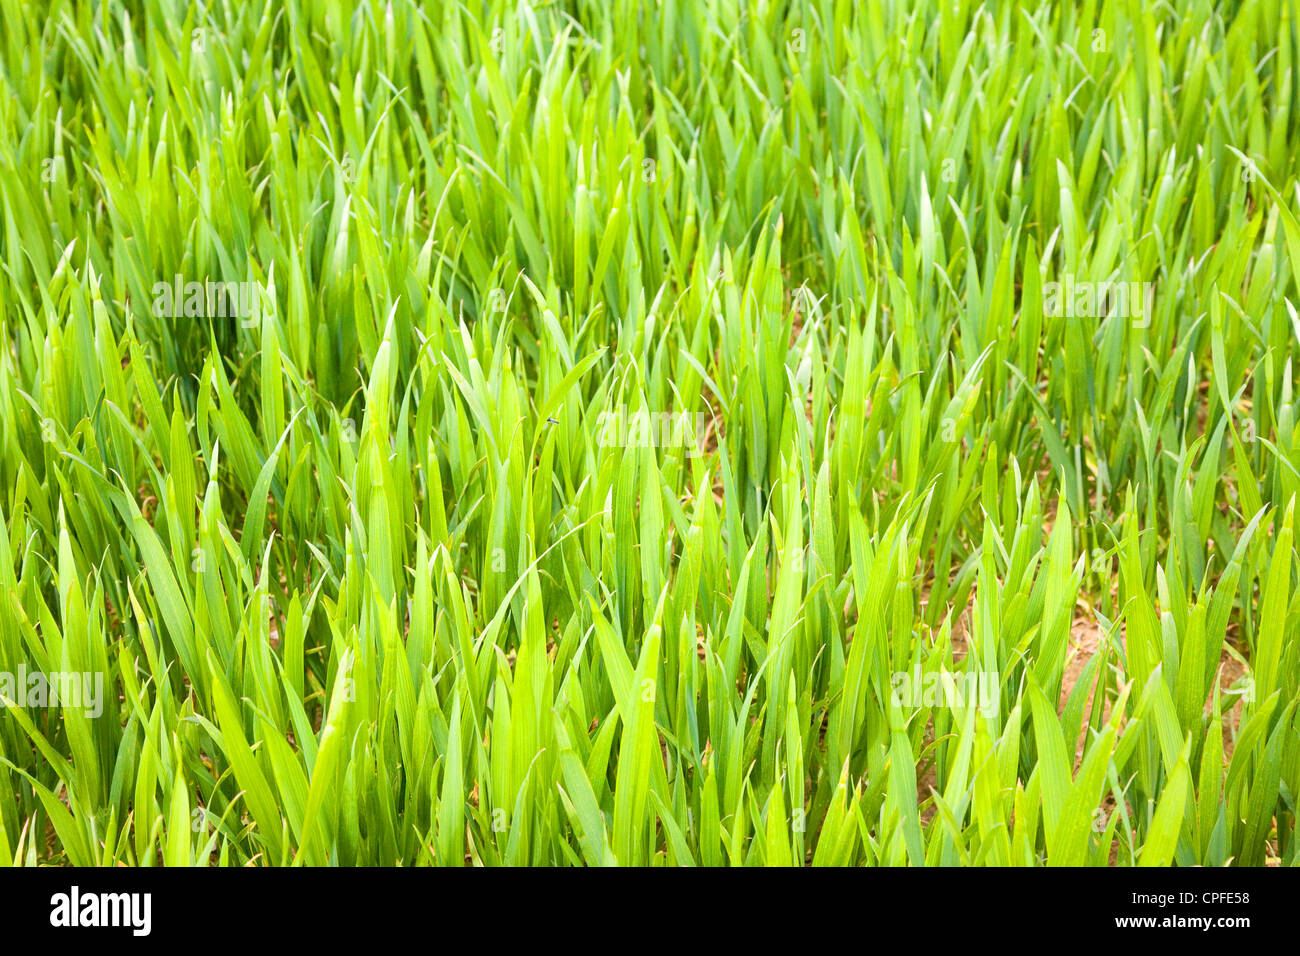 Green shoots emerge from soil - Stock Image